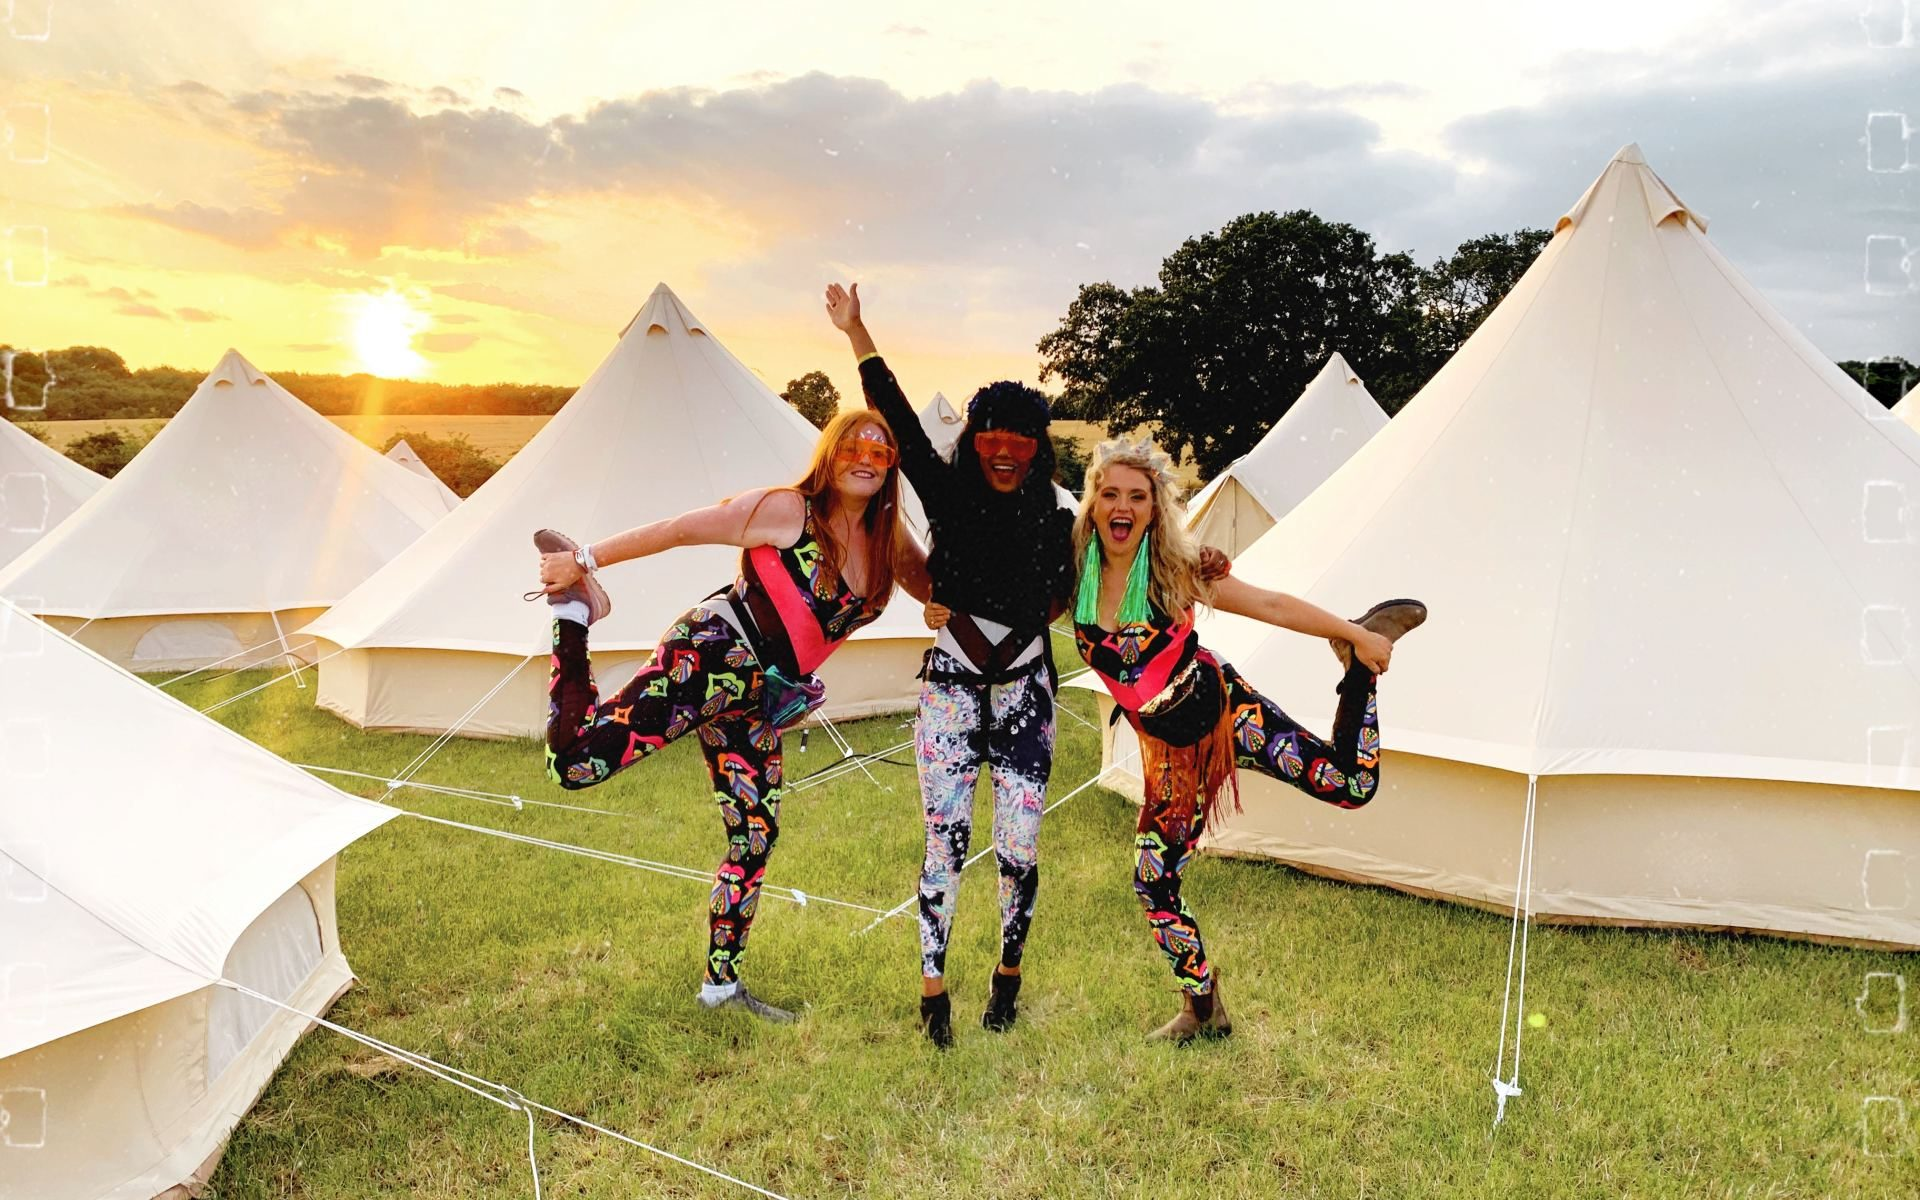 Festival Catsuits at Noisily Festival